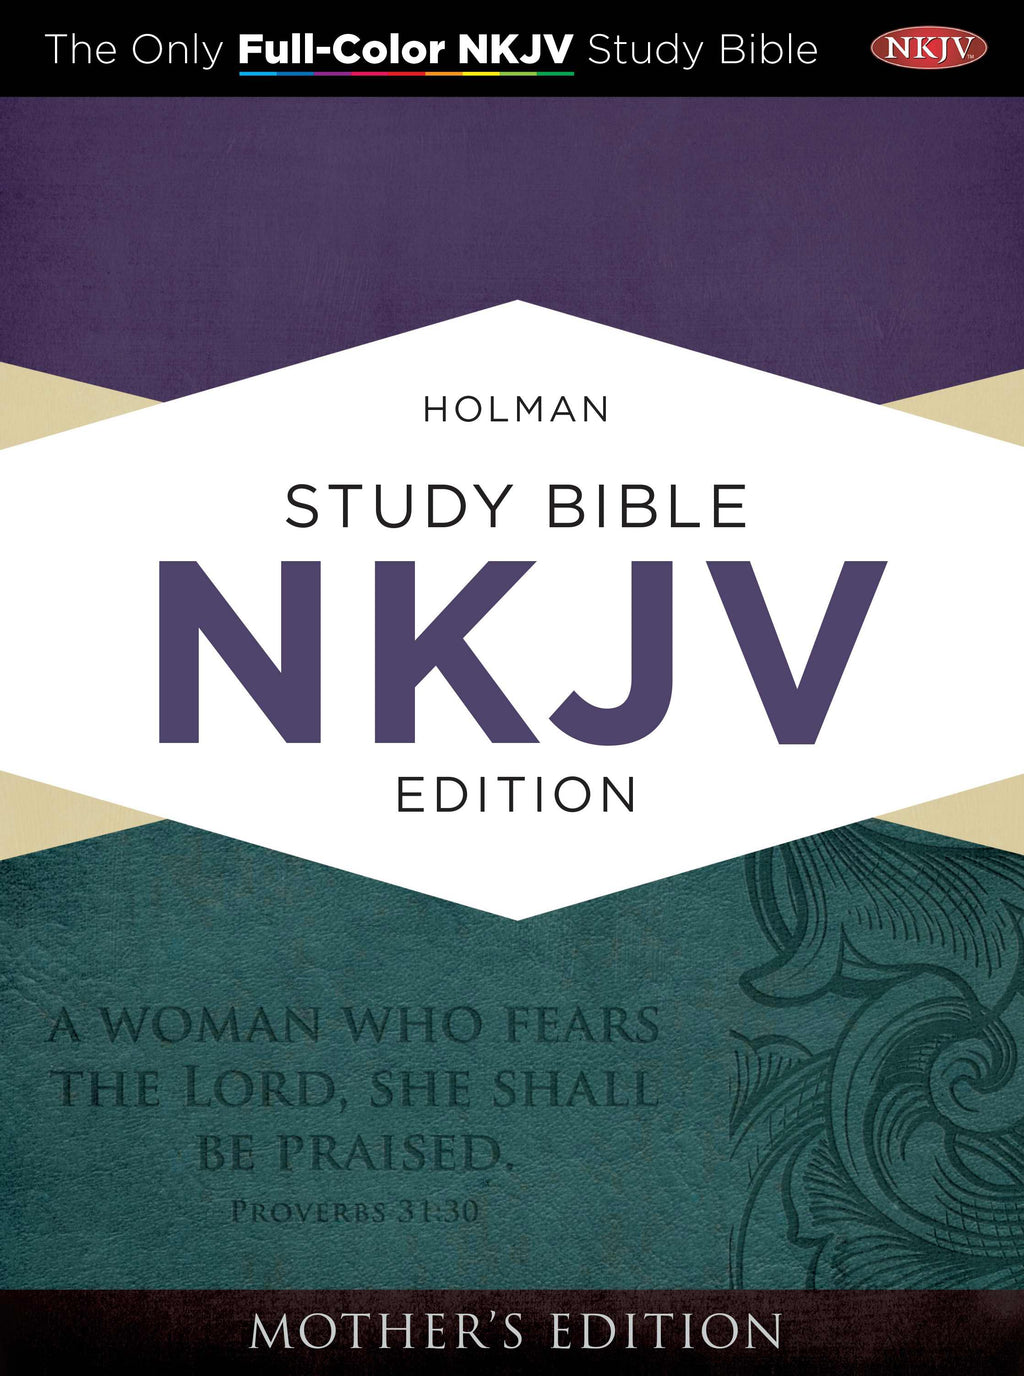 NKJV Holman Study Bible (Full Color): Mother's Edition-Turquoise LeatherTouch